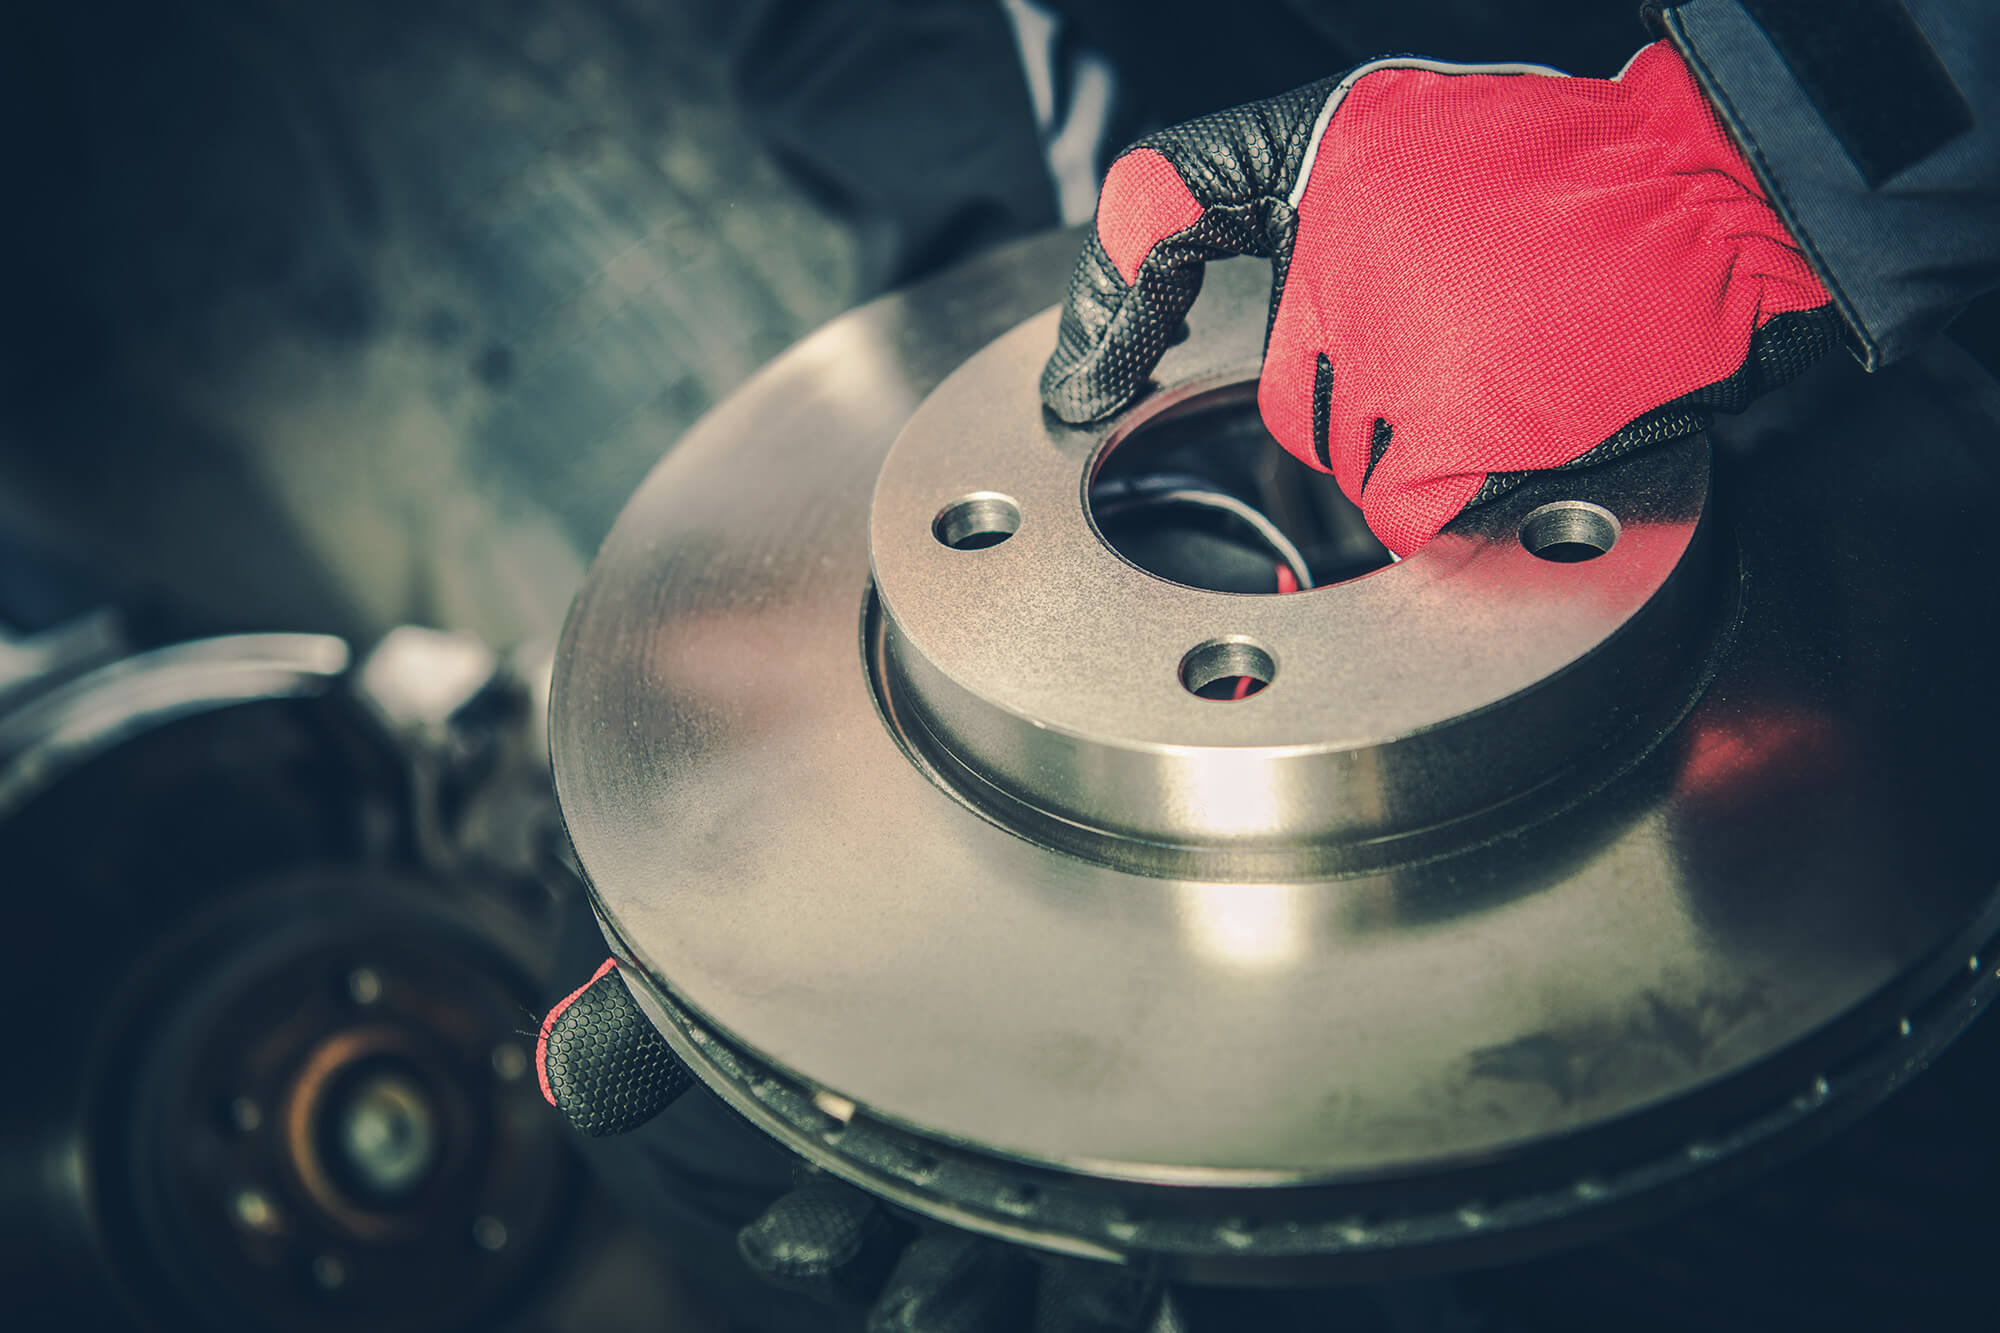 New brakes like these should be purchased if you have a burning smell.